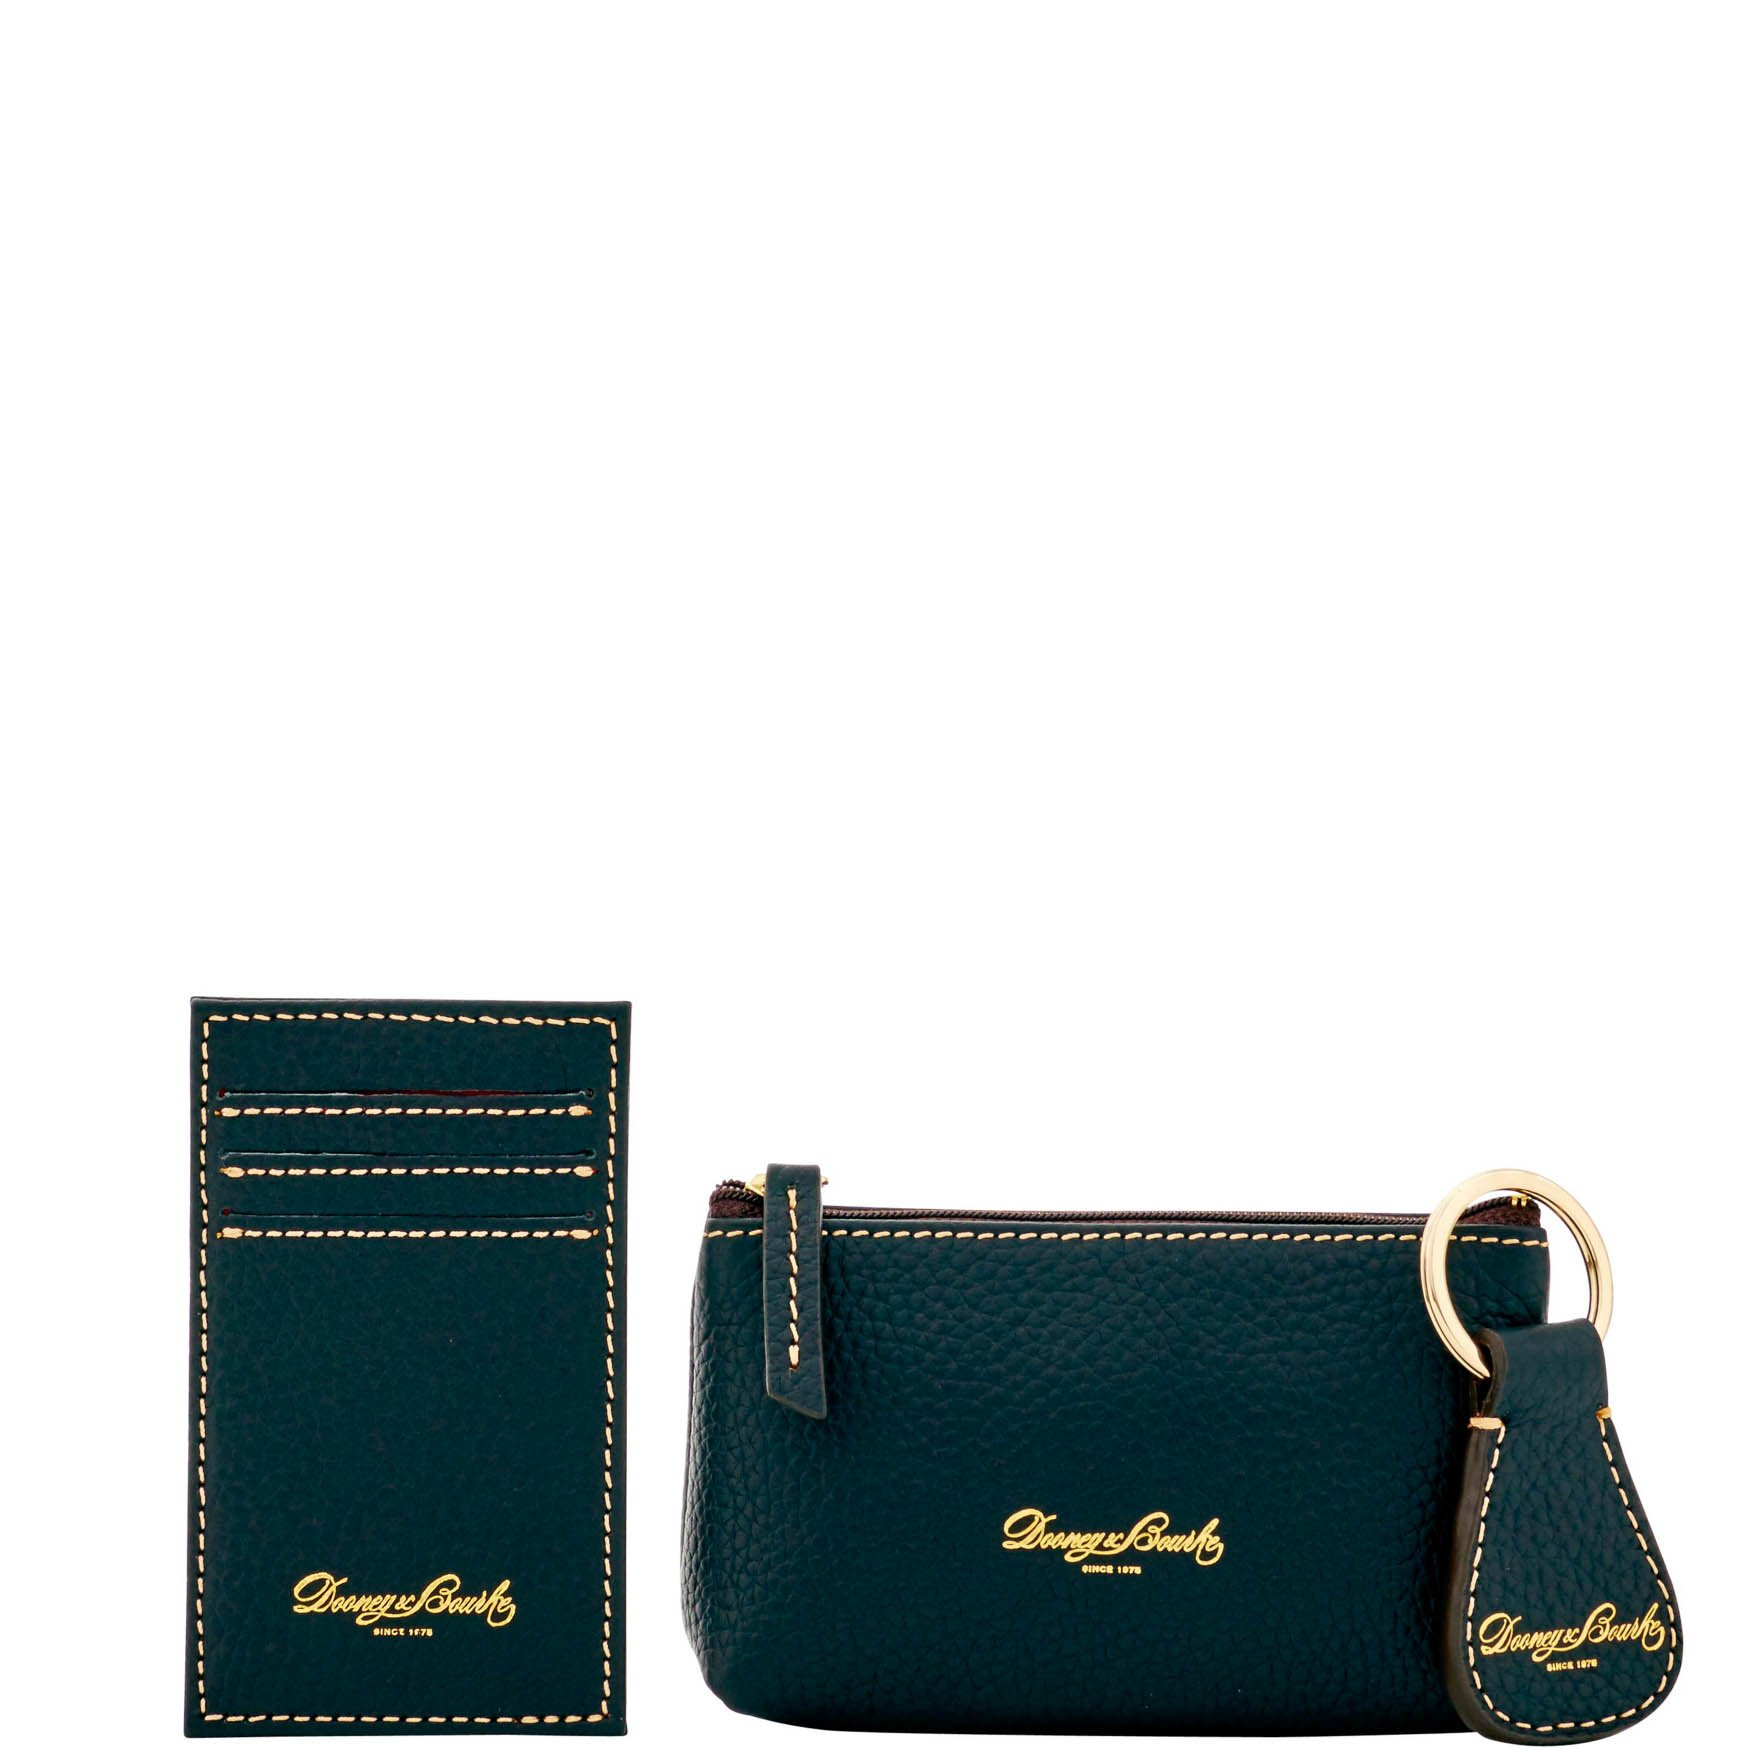 Dooney & Bourke Pebble Leather 3 piece Boxed gift set QL32A BB Black by Dooney & Bourke